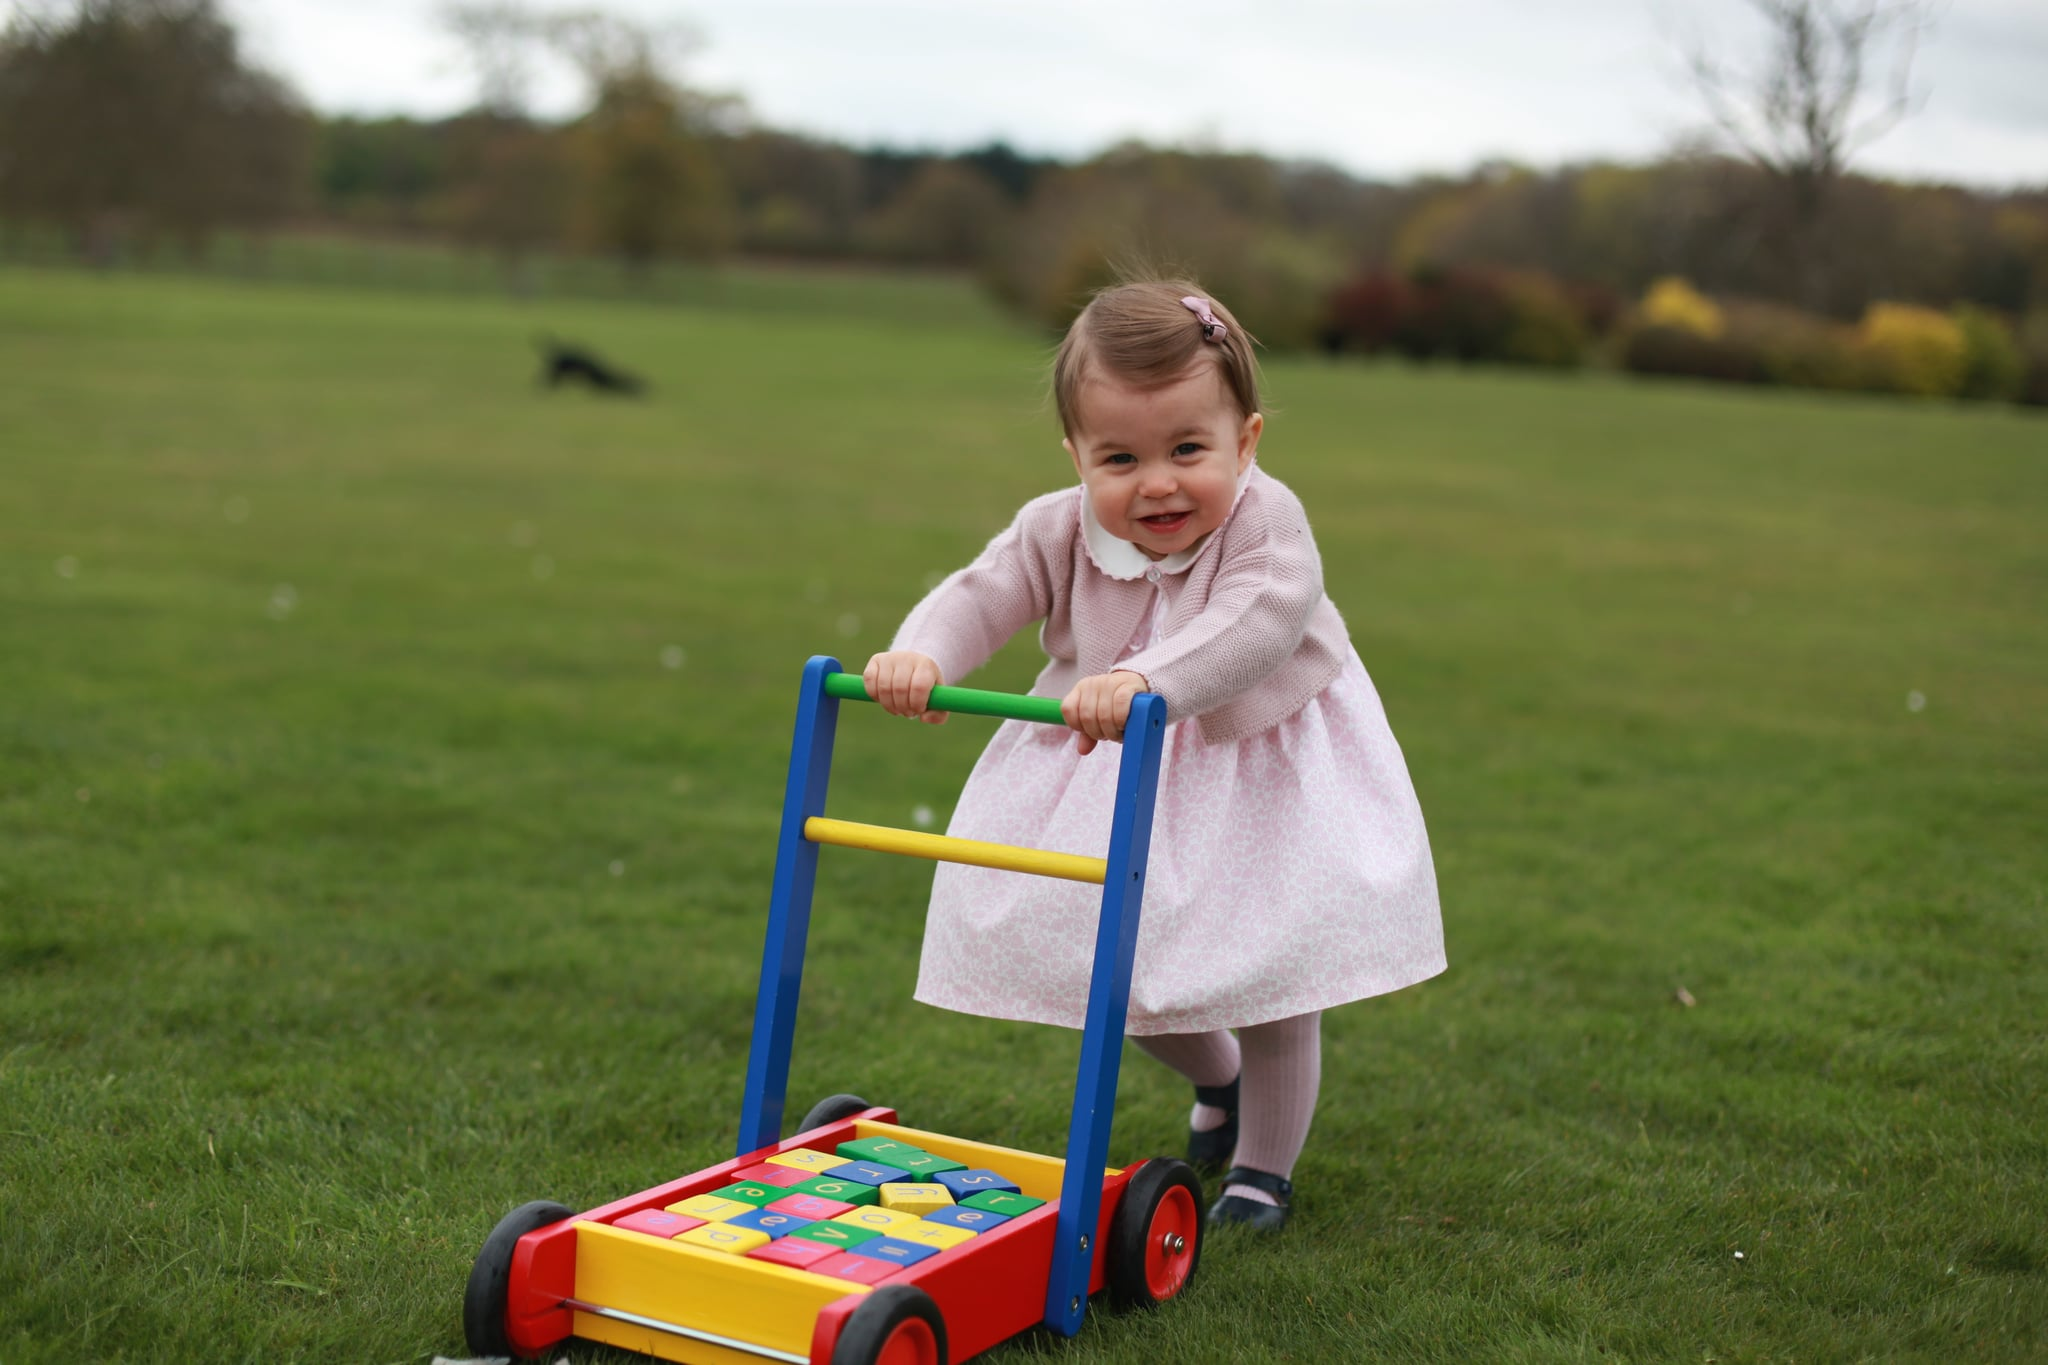 ANMER HALL, ENGLAND - APRIL 2016:  In this undated handout photo provided by HRH The Duke and Duchess of Cambridge released on May 1, 2016, Princess Charlotte of Cambridge looks on as she walks while pushing her toy blocks across the lawn outside as her mother Catherine, Duchess of Cambridge takes her photo ahead of her first birthday on May 2, 2016 at Anmer Hall on April 2016 in Norfolk, England. The young Princess will celebrate her first birthday on May 2. (Photo by HRH The Duchess of Cambridge via Getty mages) EDITORIAL USE ONLY. NO COMMERCIAL USE (including any use in merchandising, advertising or any other non-editorial use including, for example, calendars, books and supplements). This photograph is provided to you strictly on condition that you will make no charge for the supply, release or publication of it and that these conditions and restrictions will apply (and that you will pass these on) to any organisation to whom you supply it. All other requests for use should be directed to the Press Office at Kensington Palace in writing.